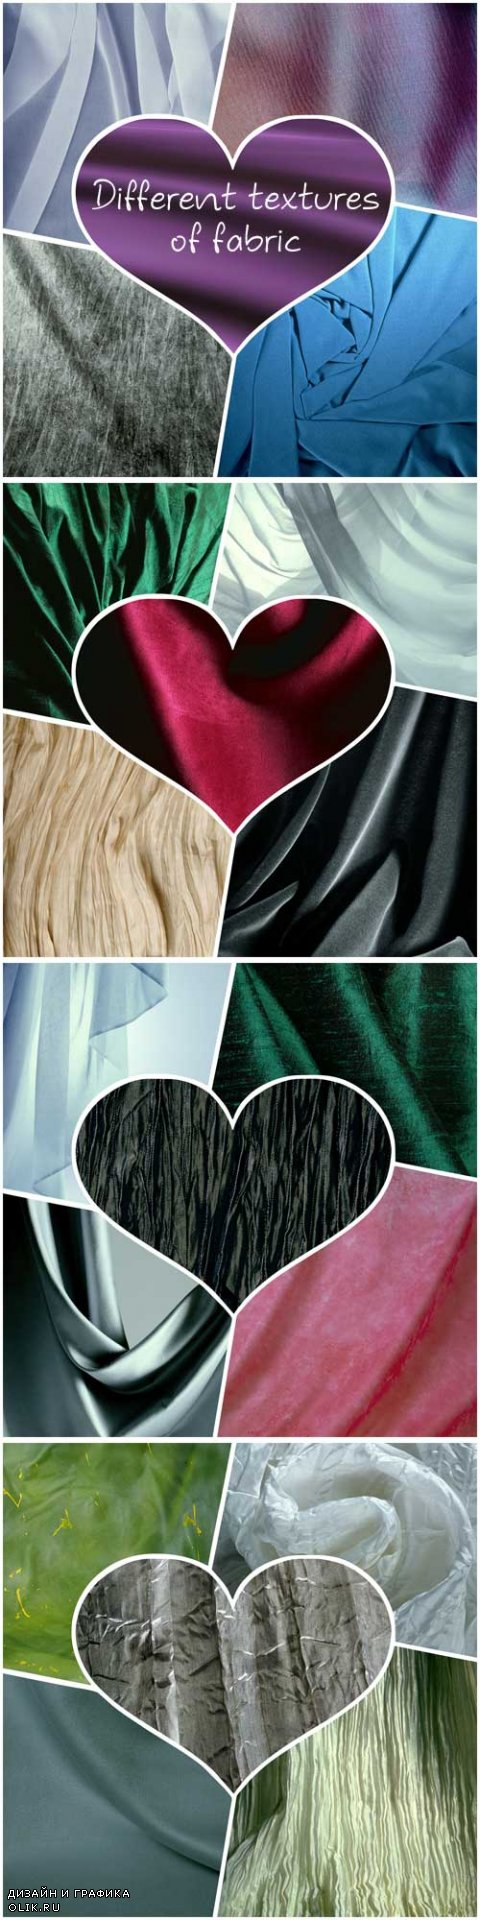 Different textures of fabric